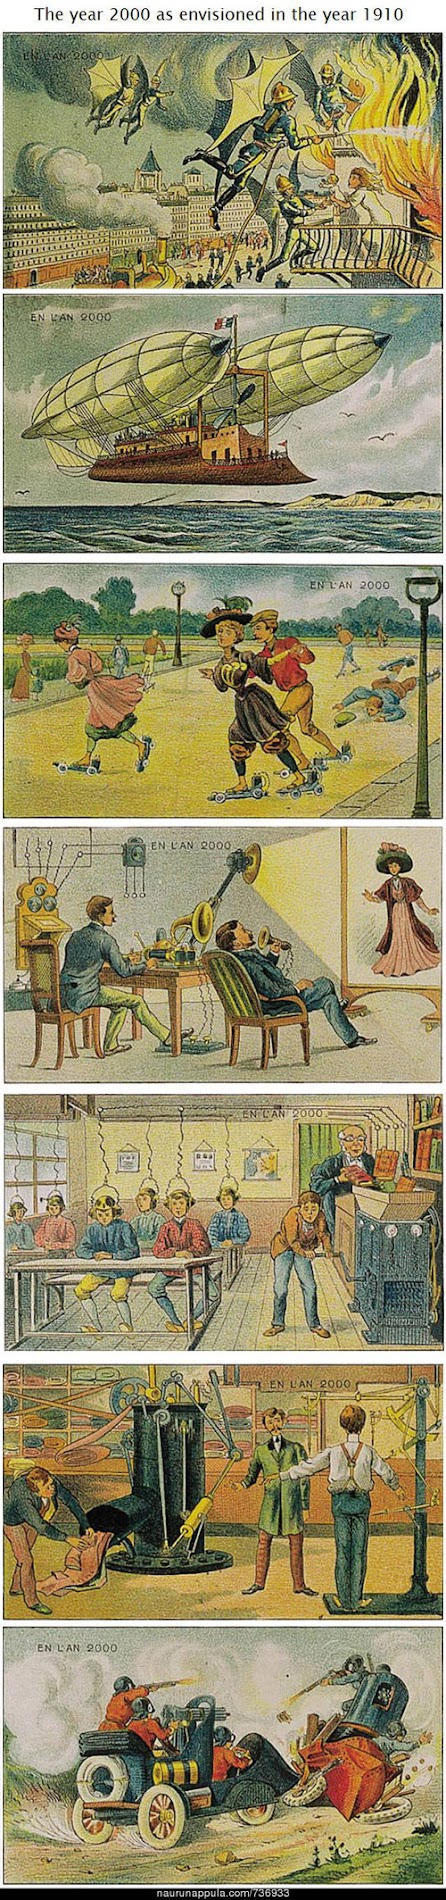 year 2000 envisioned in 1910